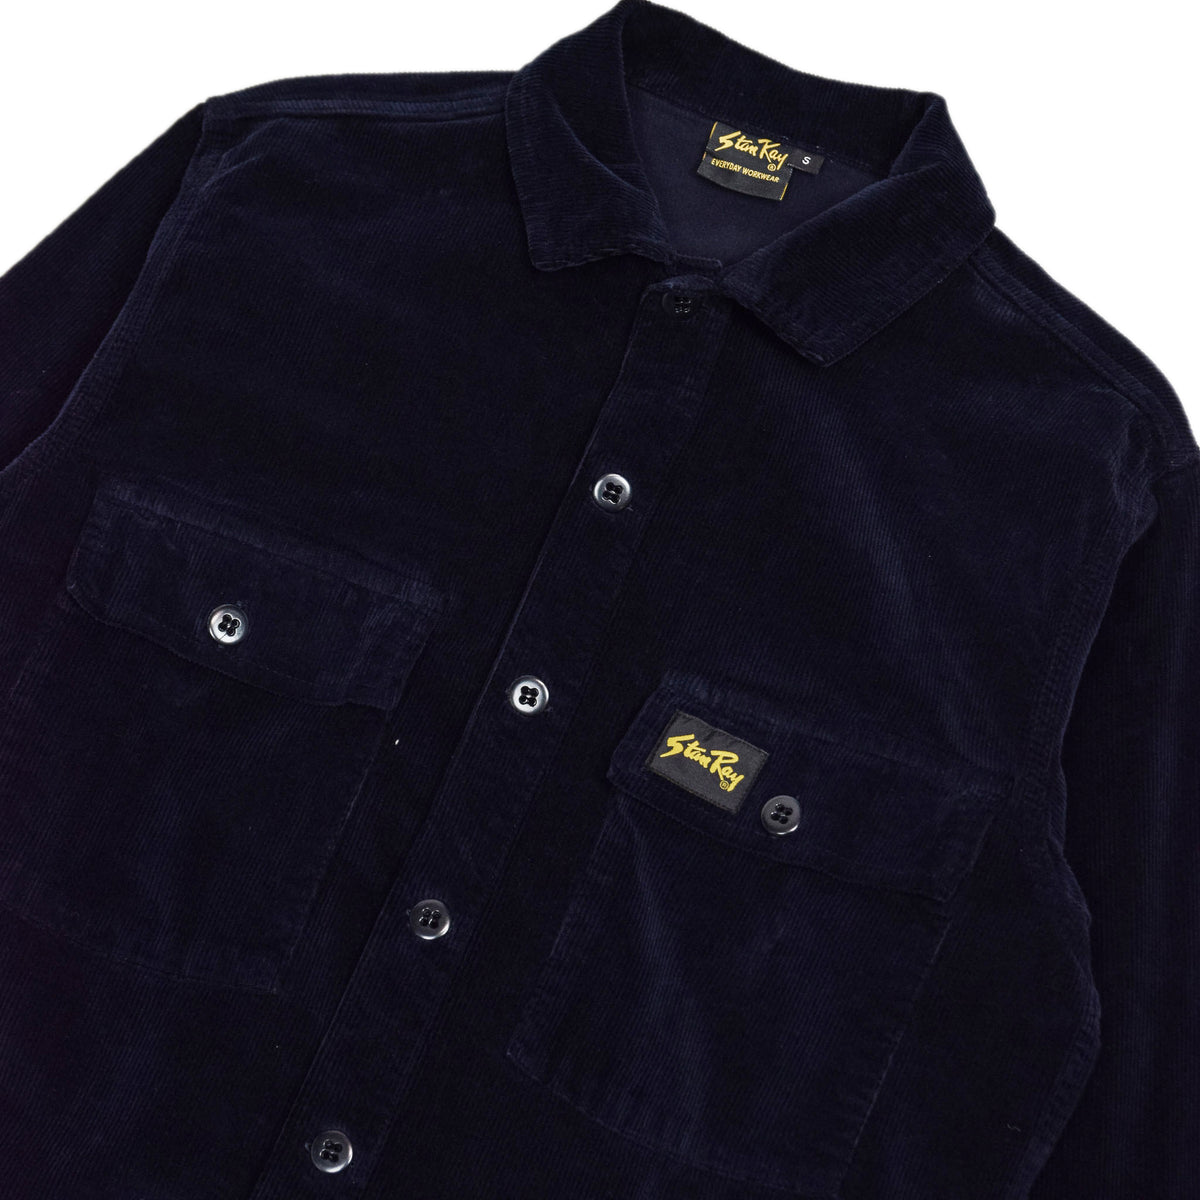 Stan Ray Navy Cord CPO Shirt chest